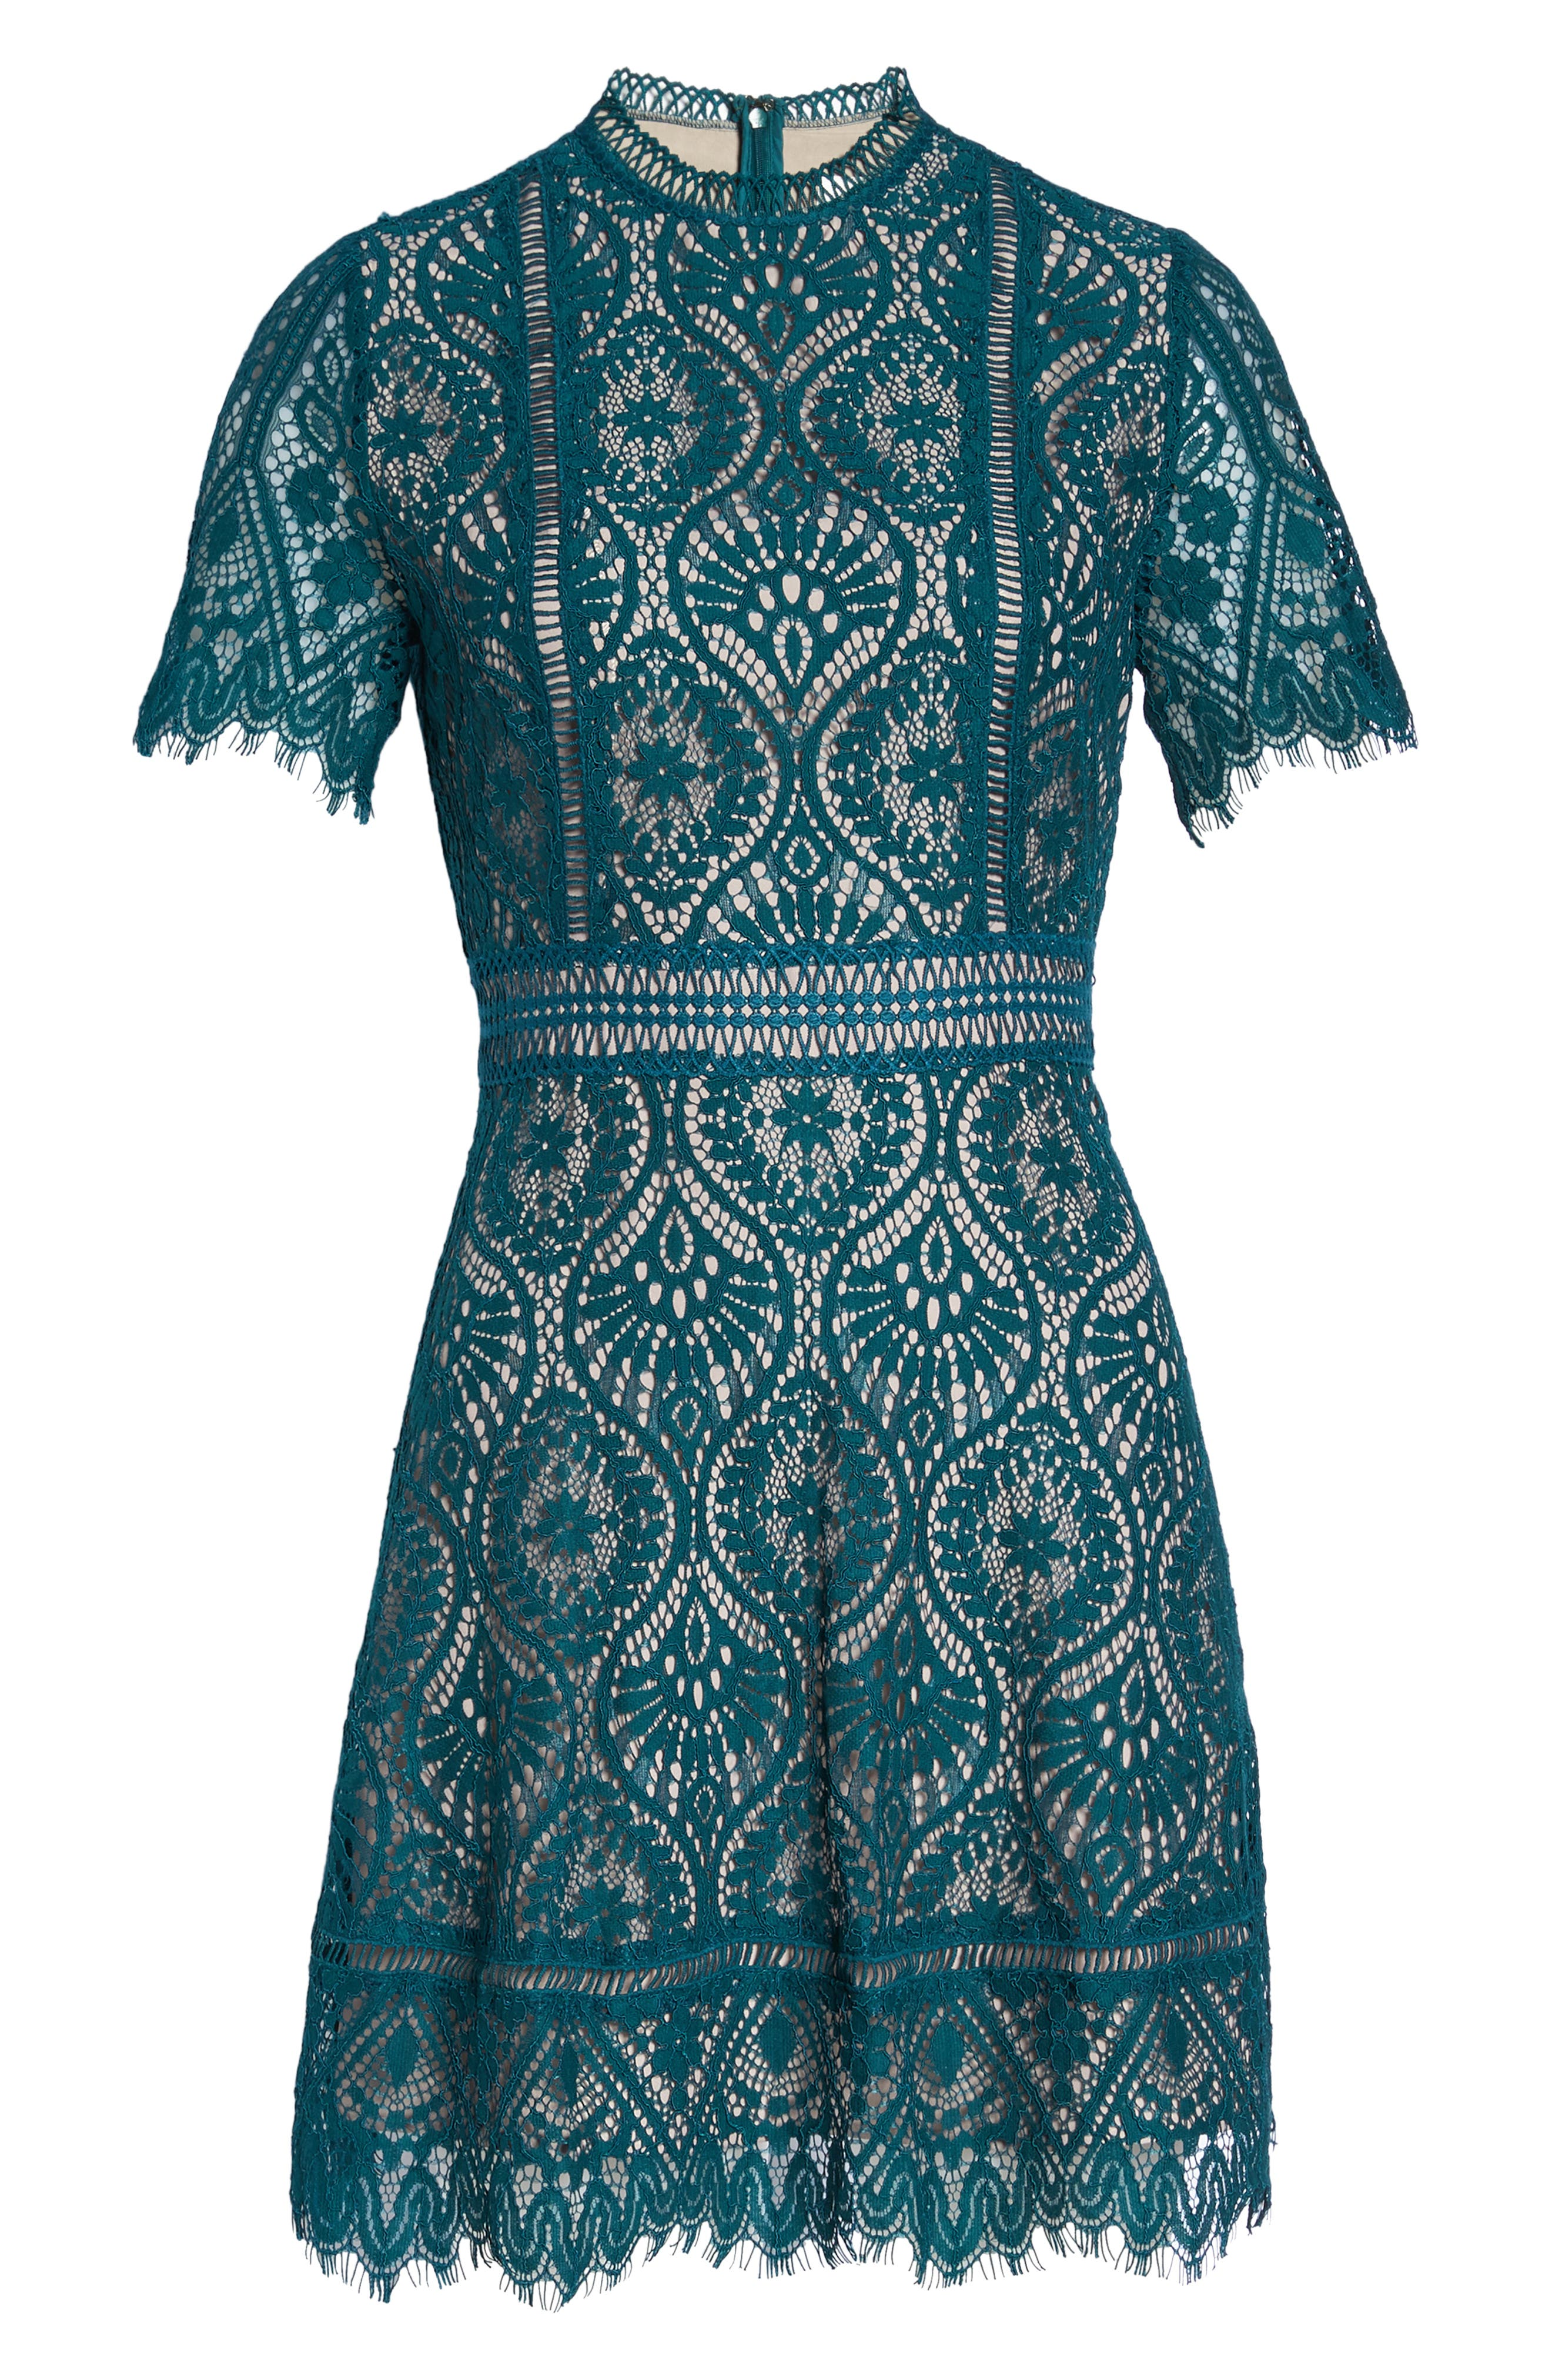 On List Short Sleeve Lace Fit & Flare Dress,                             Alternate thumbnail 7, color,                             301